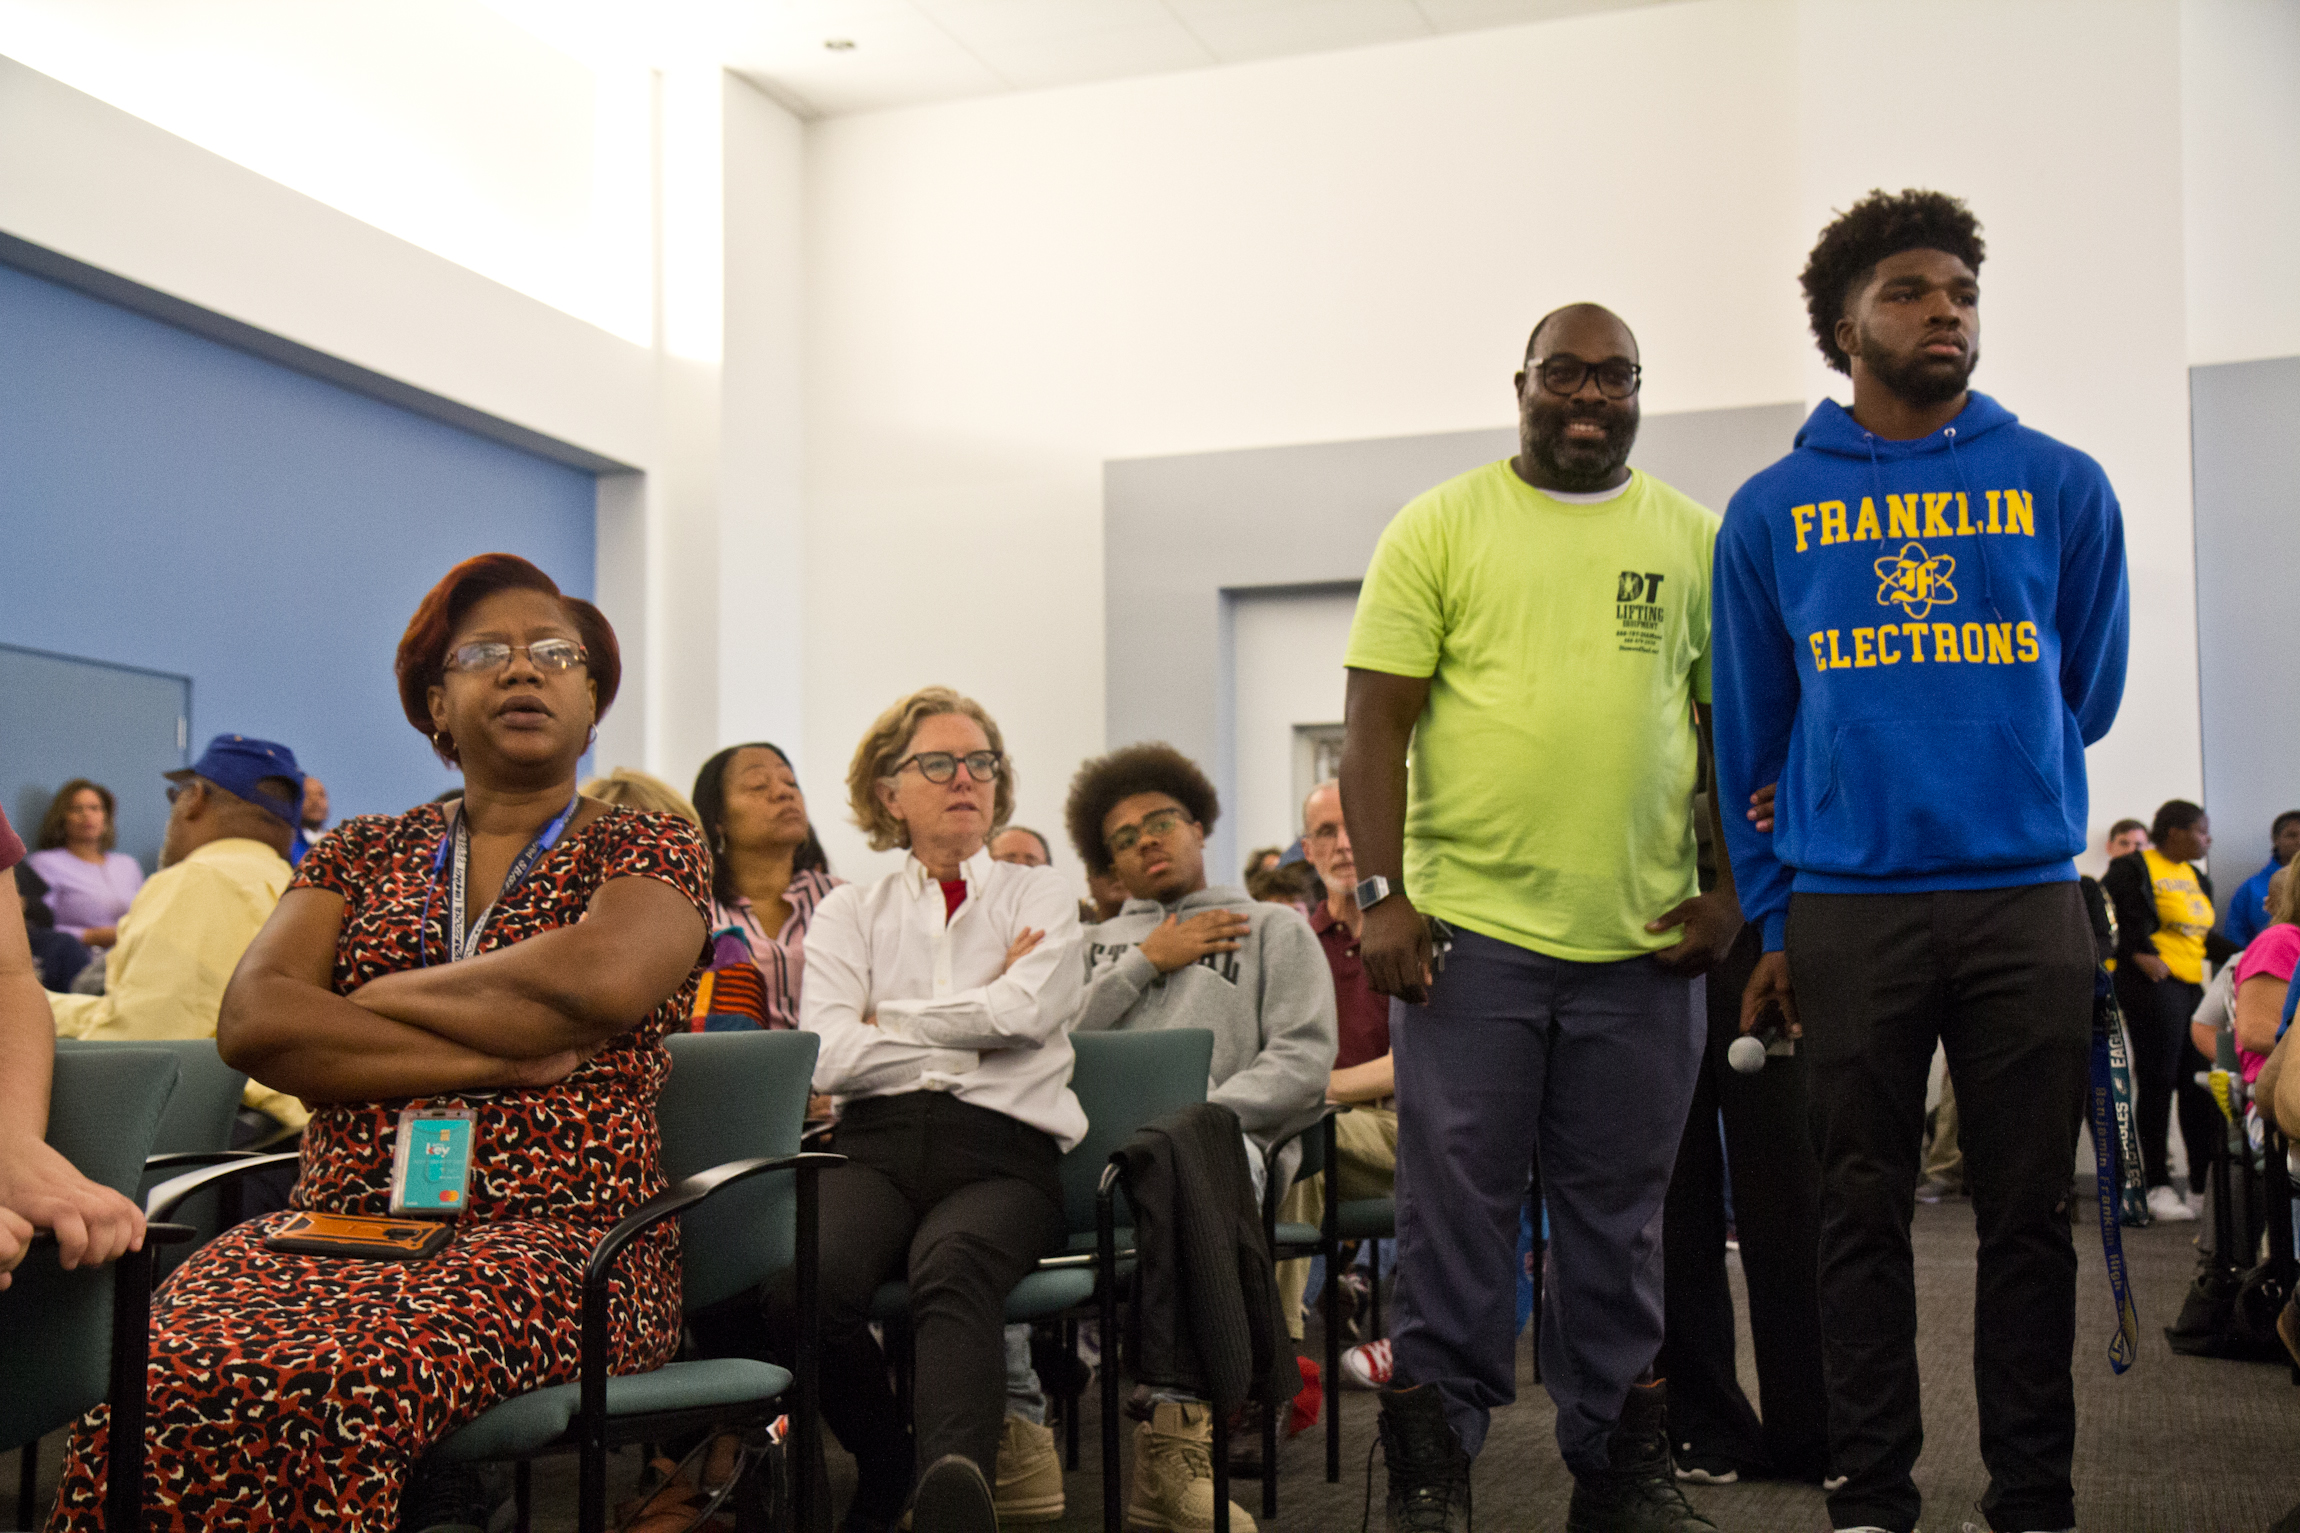 After pushback from parents, new options proposed for displaced Ben Franklin, SLA students